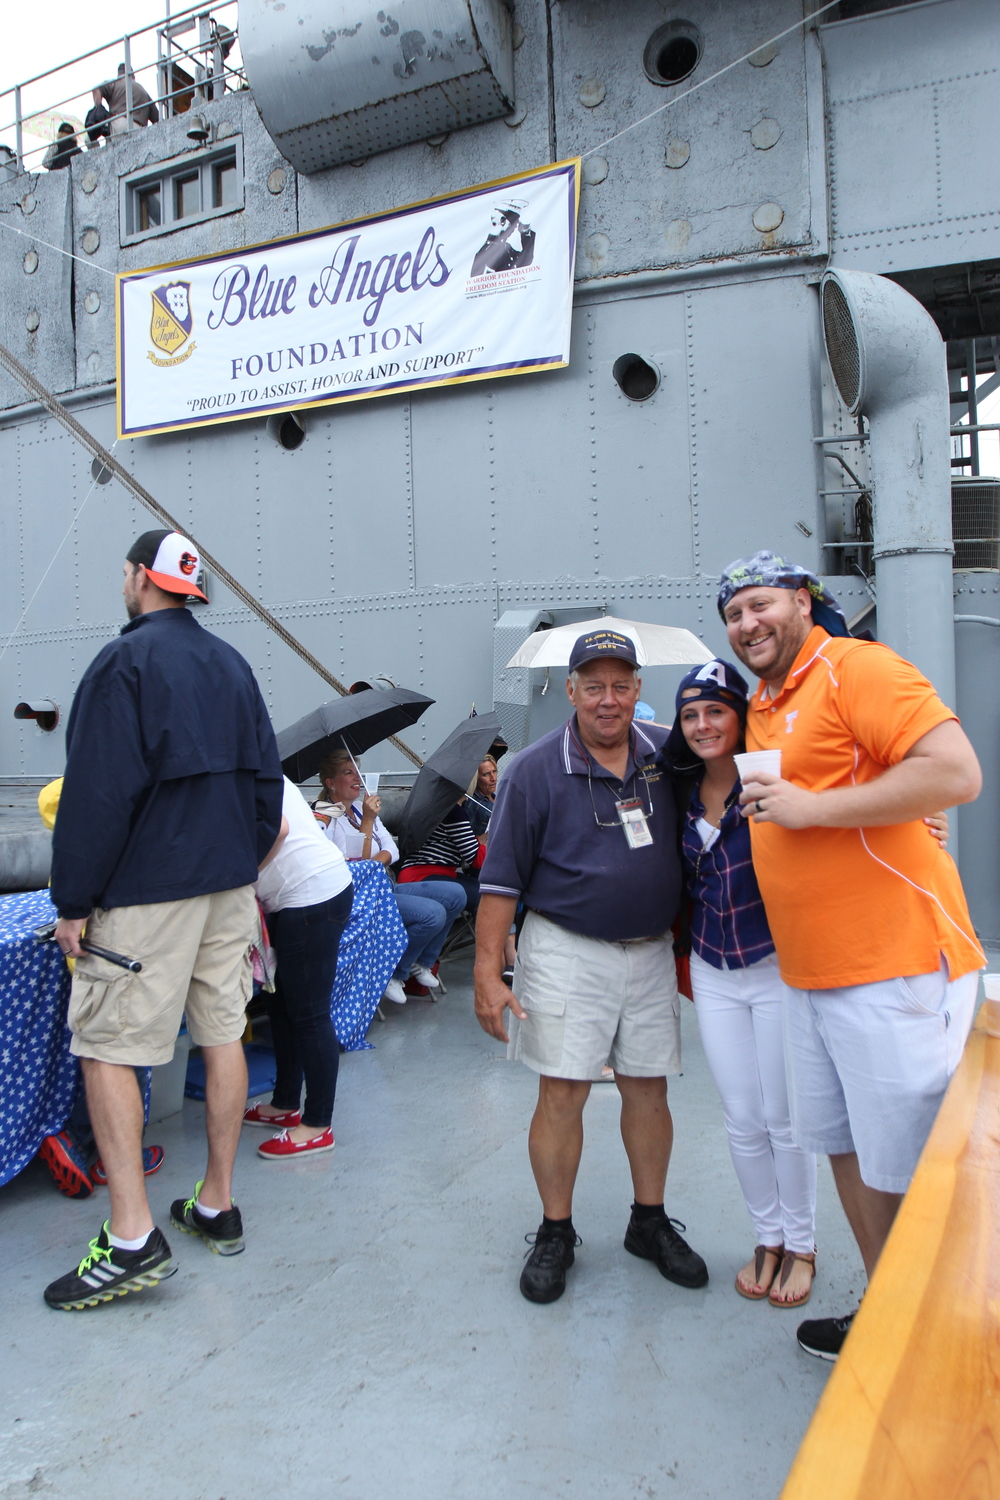 Blue Angels Foundation ....  They chartered the ship to view the Blue Angel Airshow during Sailabration 2014.